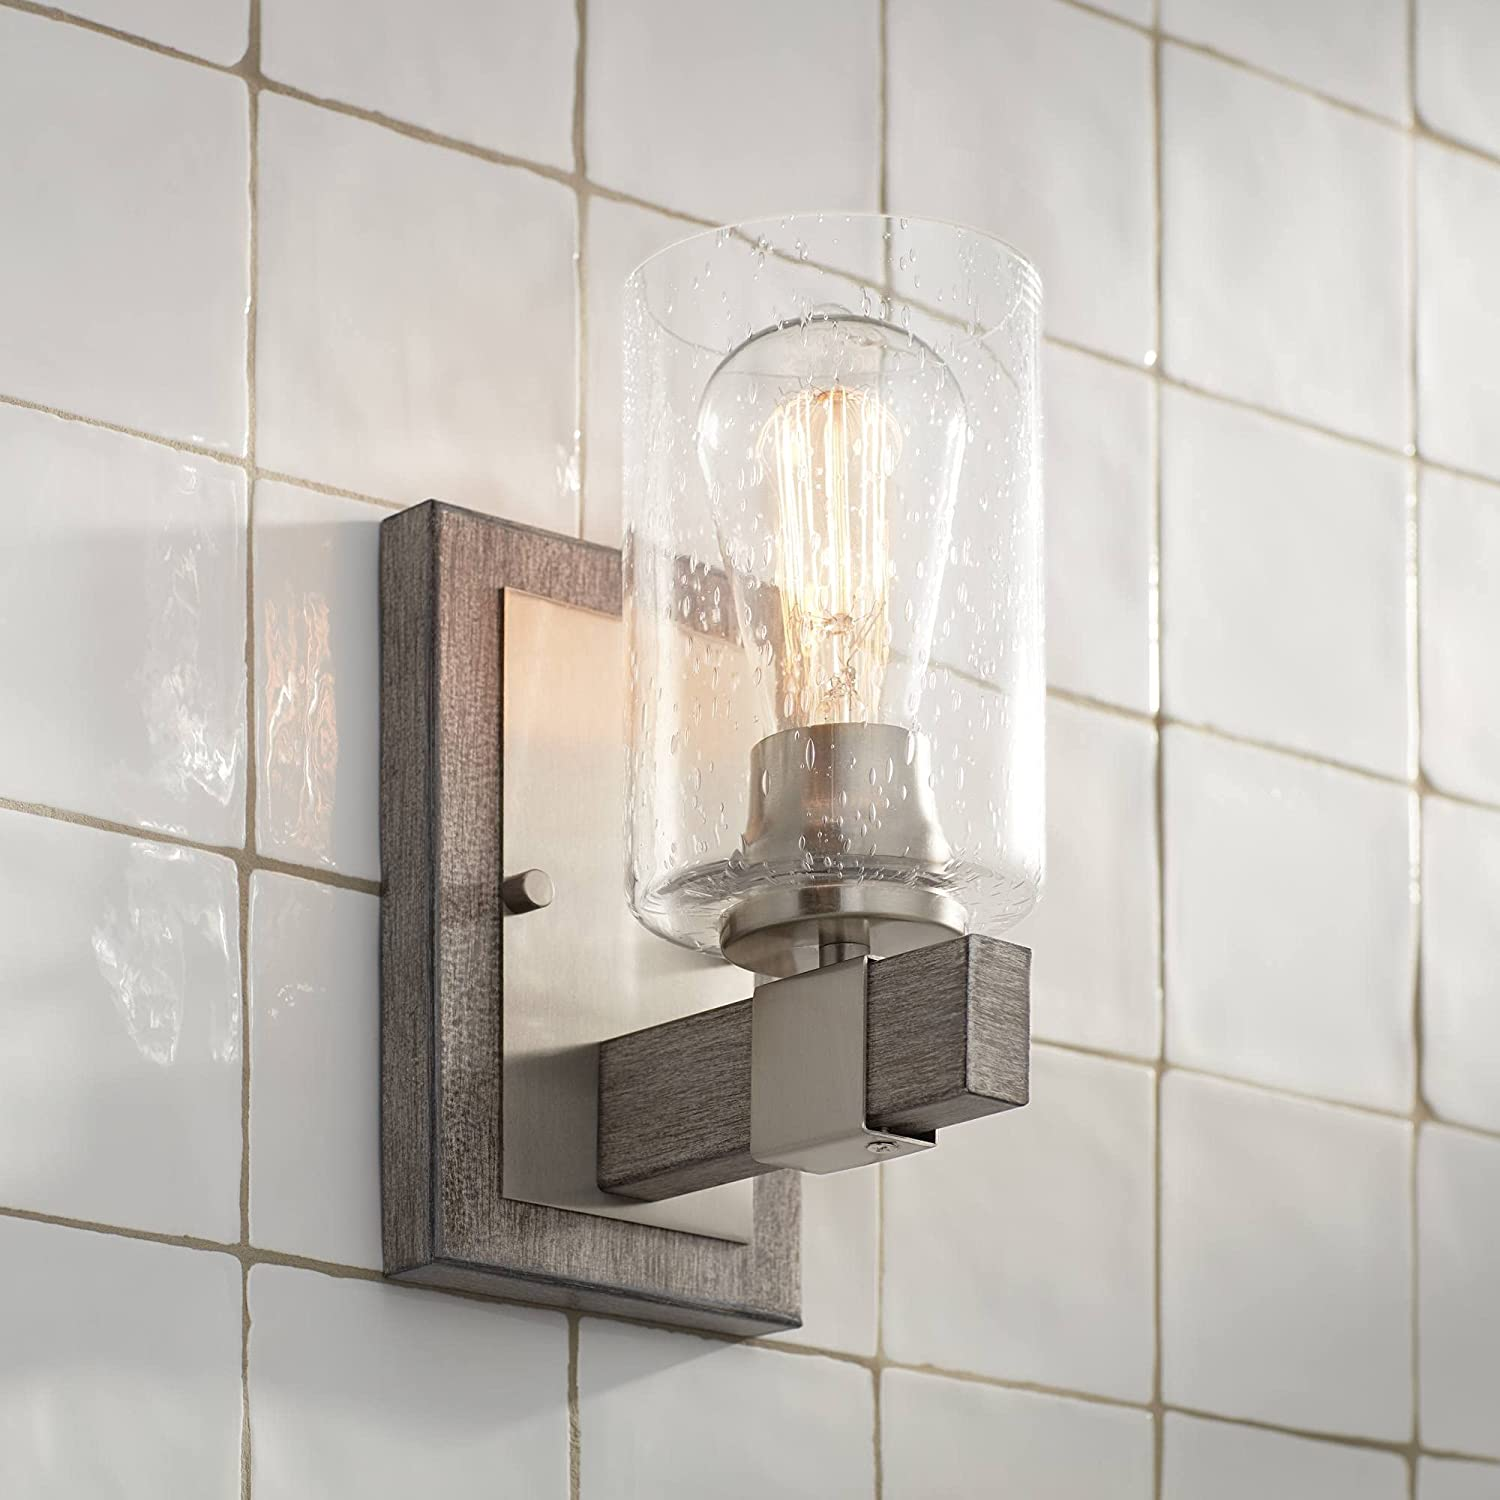 Poetry Max 45% OFF Rustic Farmhouse Industrial Wall Lighting Sconce Woo Super Special SALE held Gray